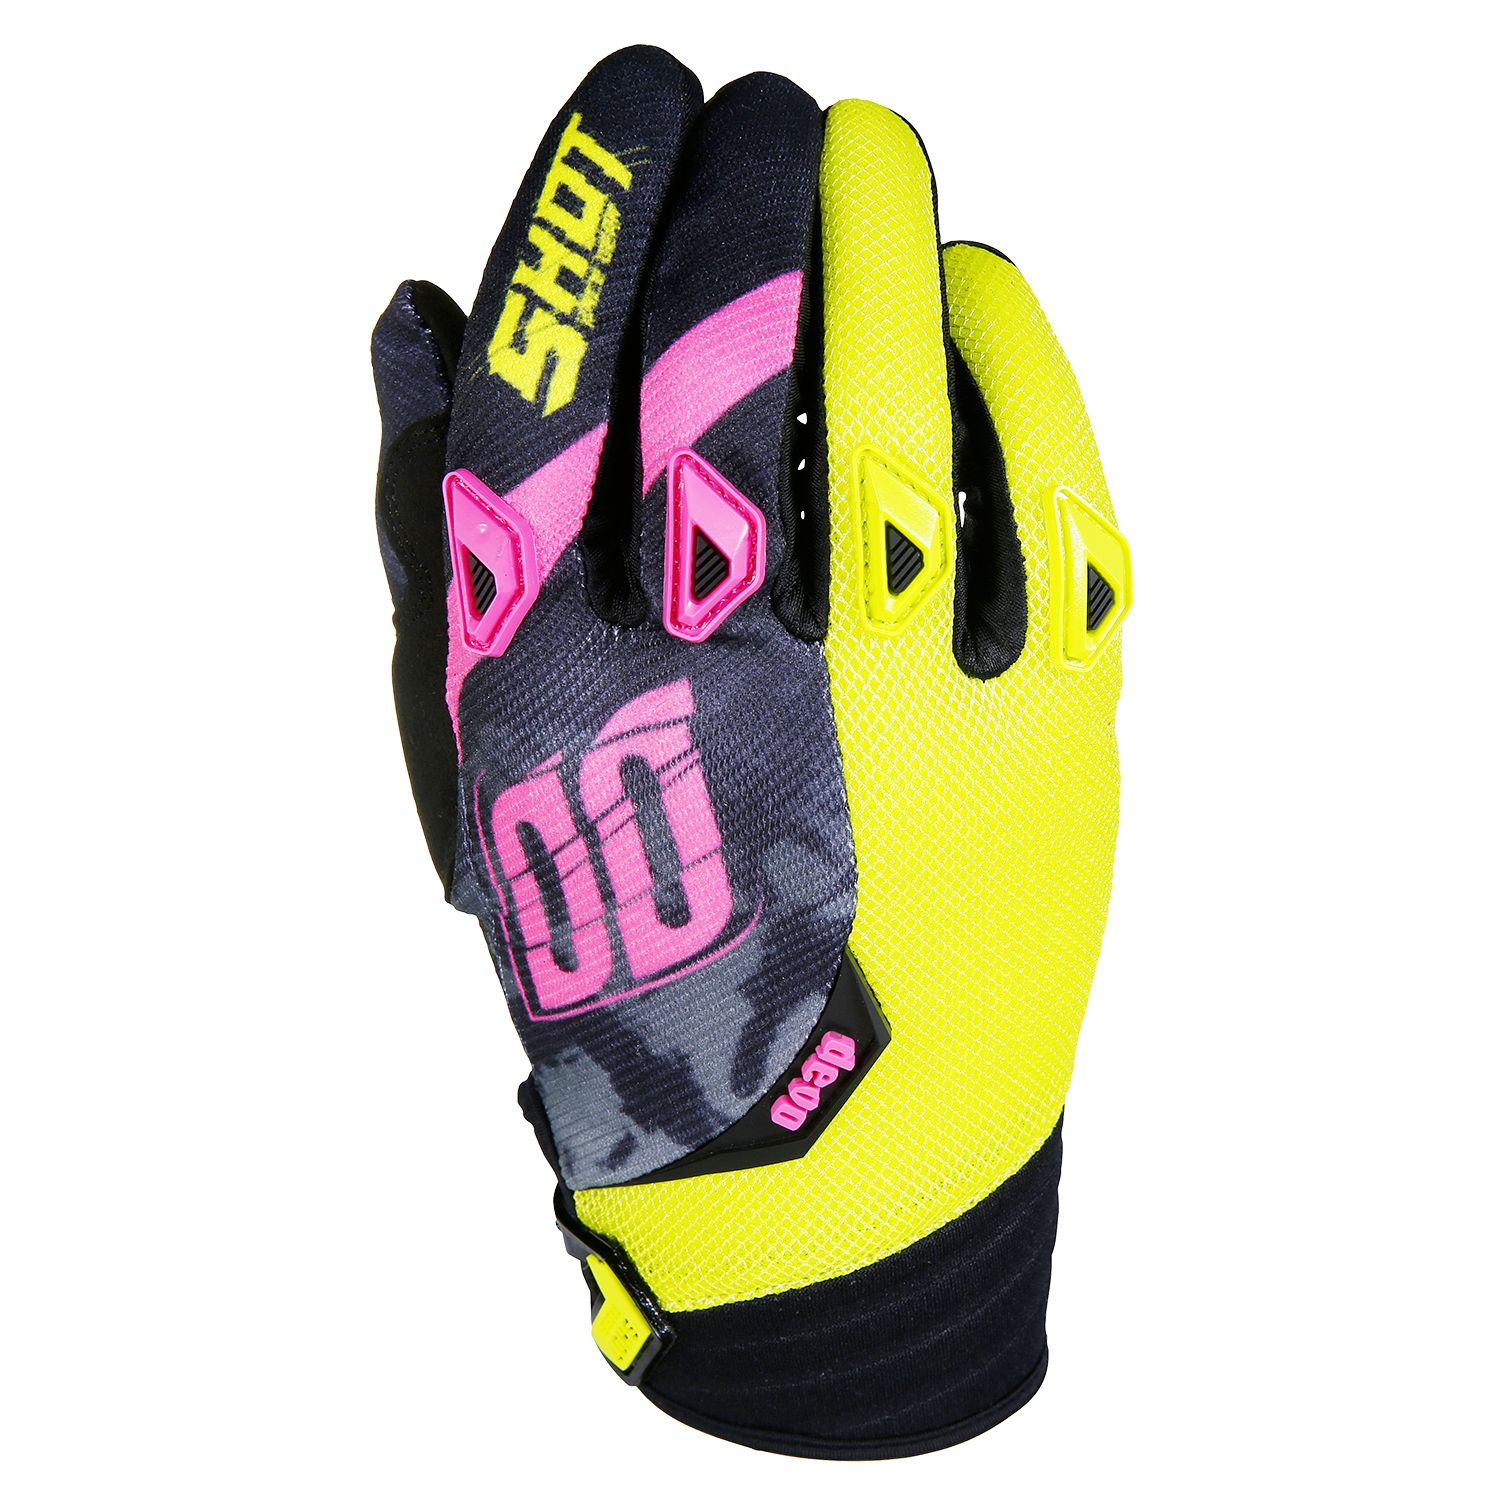 Gants cross Shot destockage DEVO SQUAD LIME NEON ROSE 2017